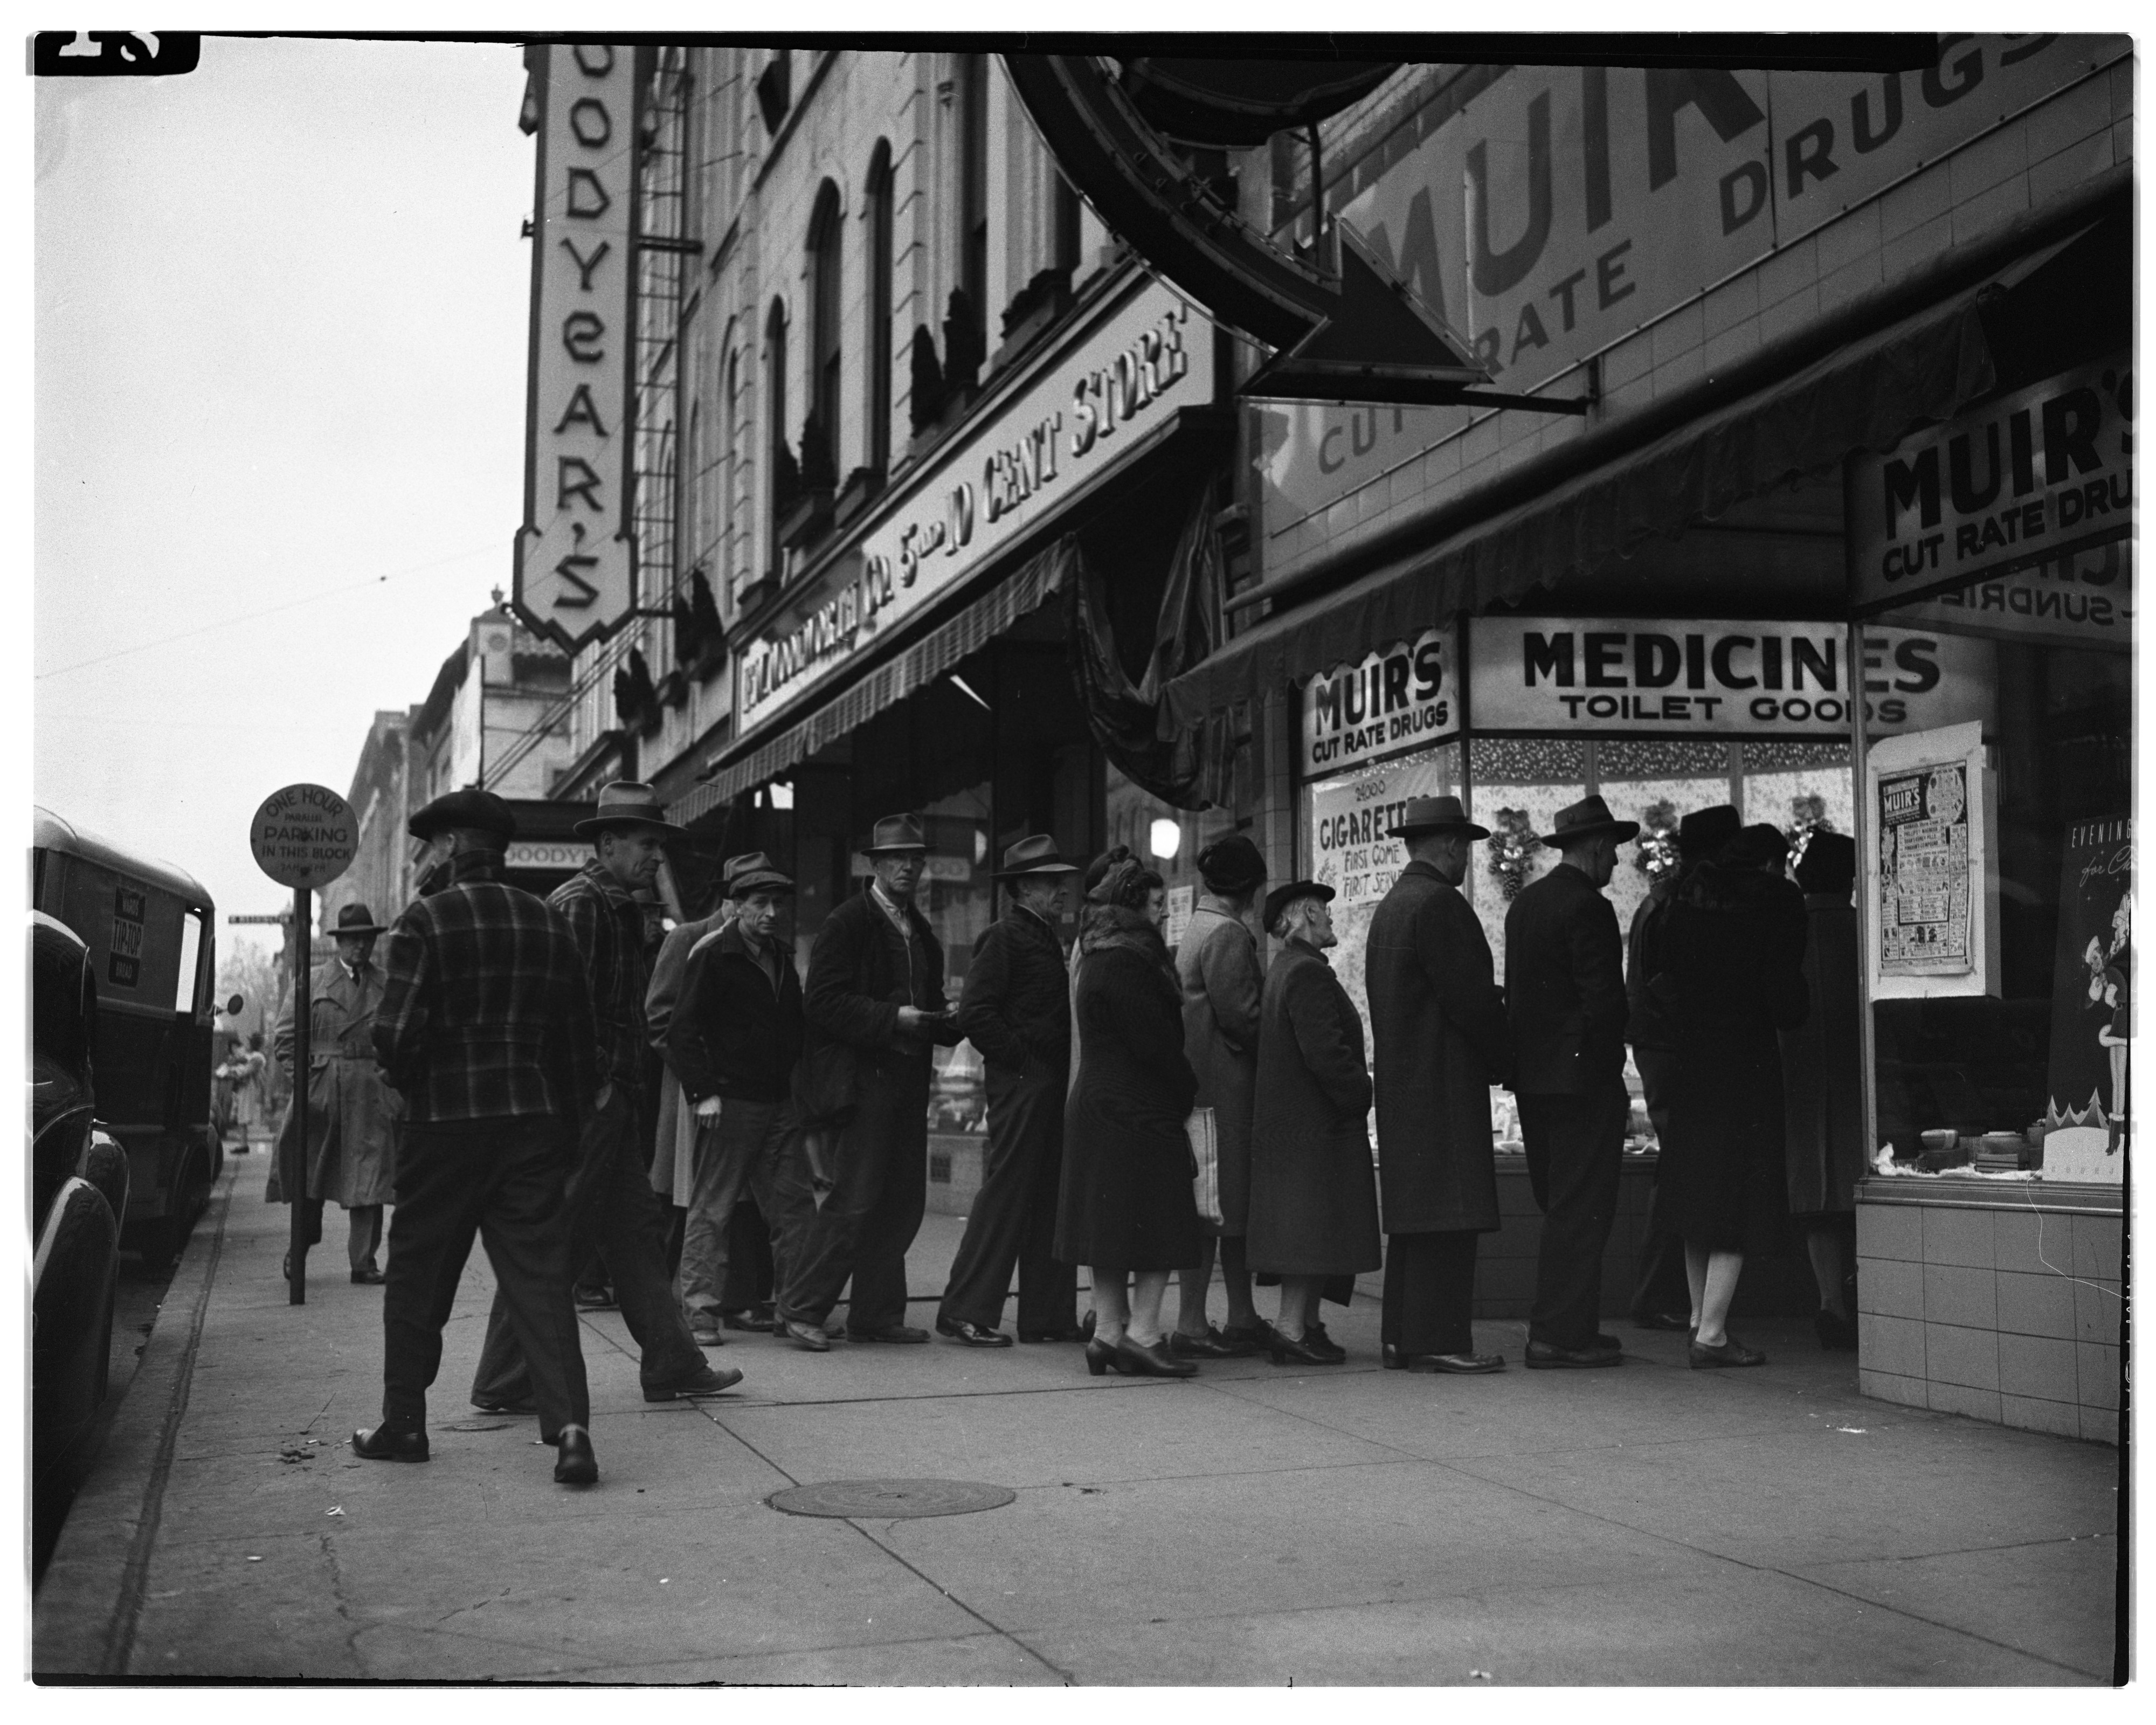 Line-Up at Muir's During Cigarette Shortage, November 1944 image